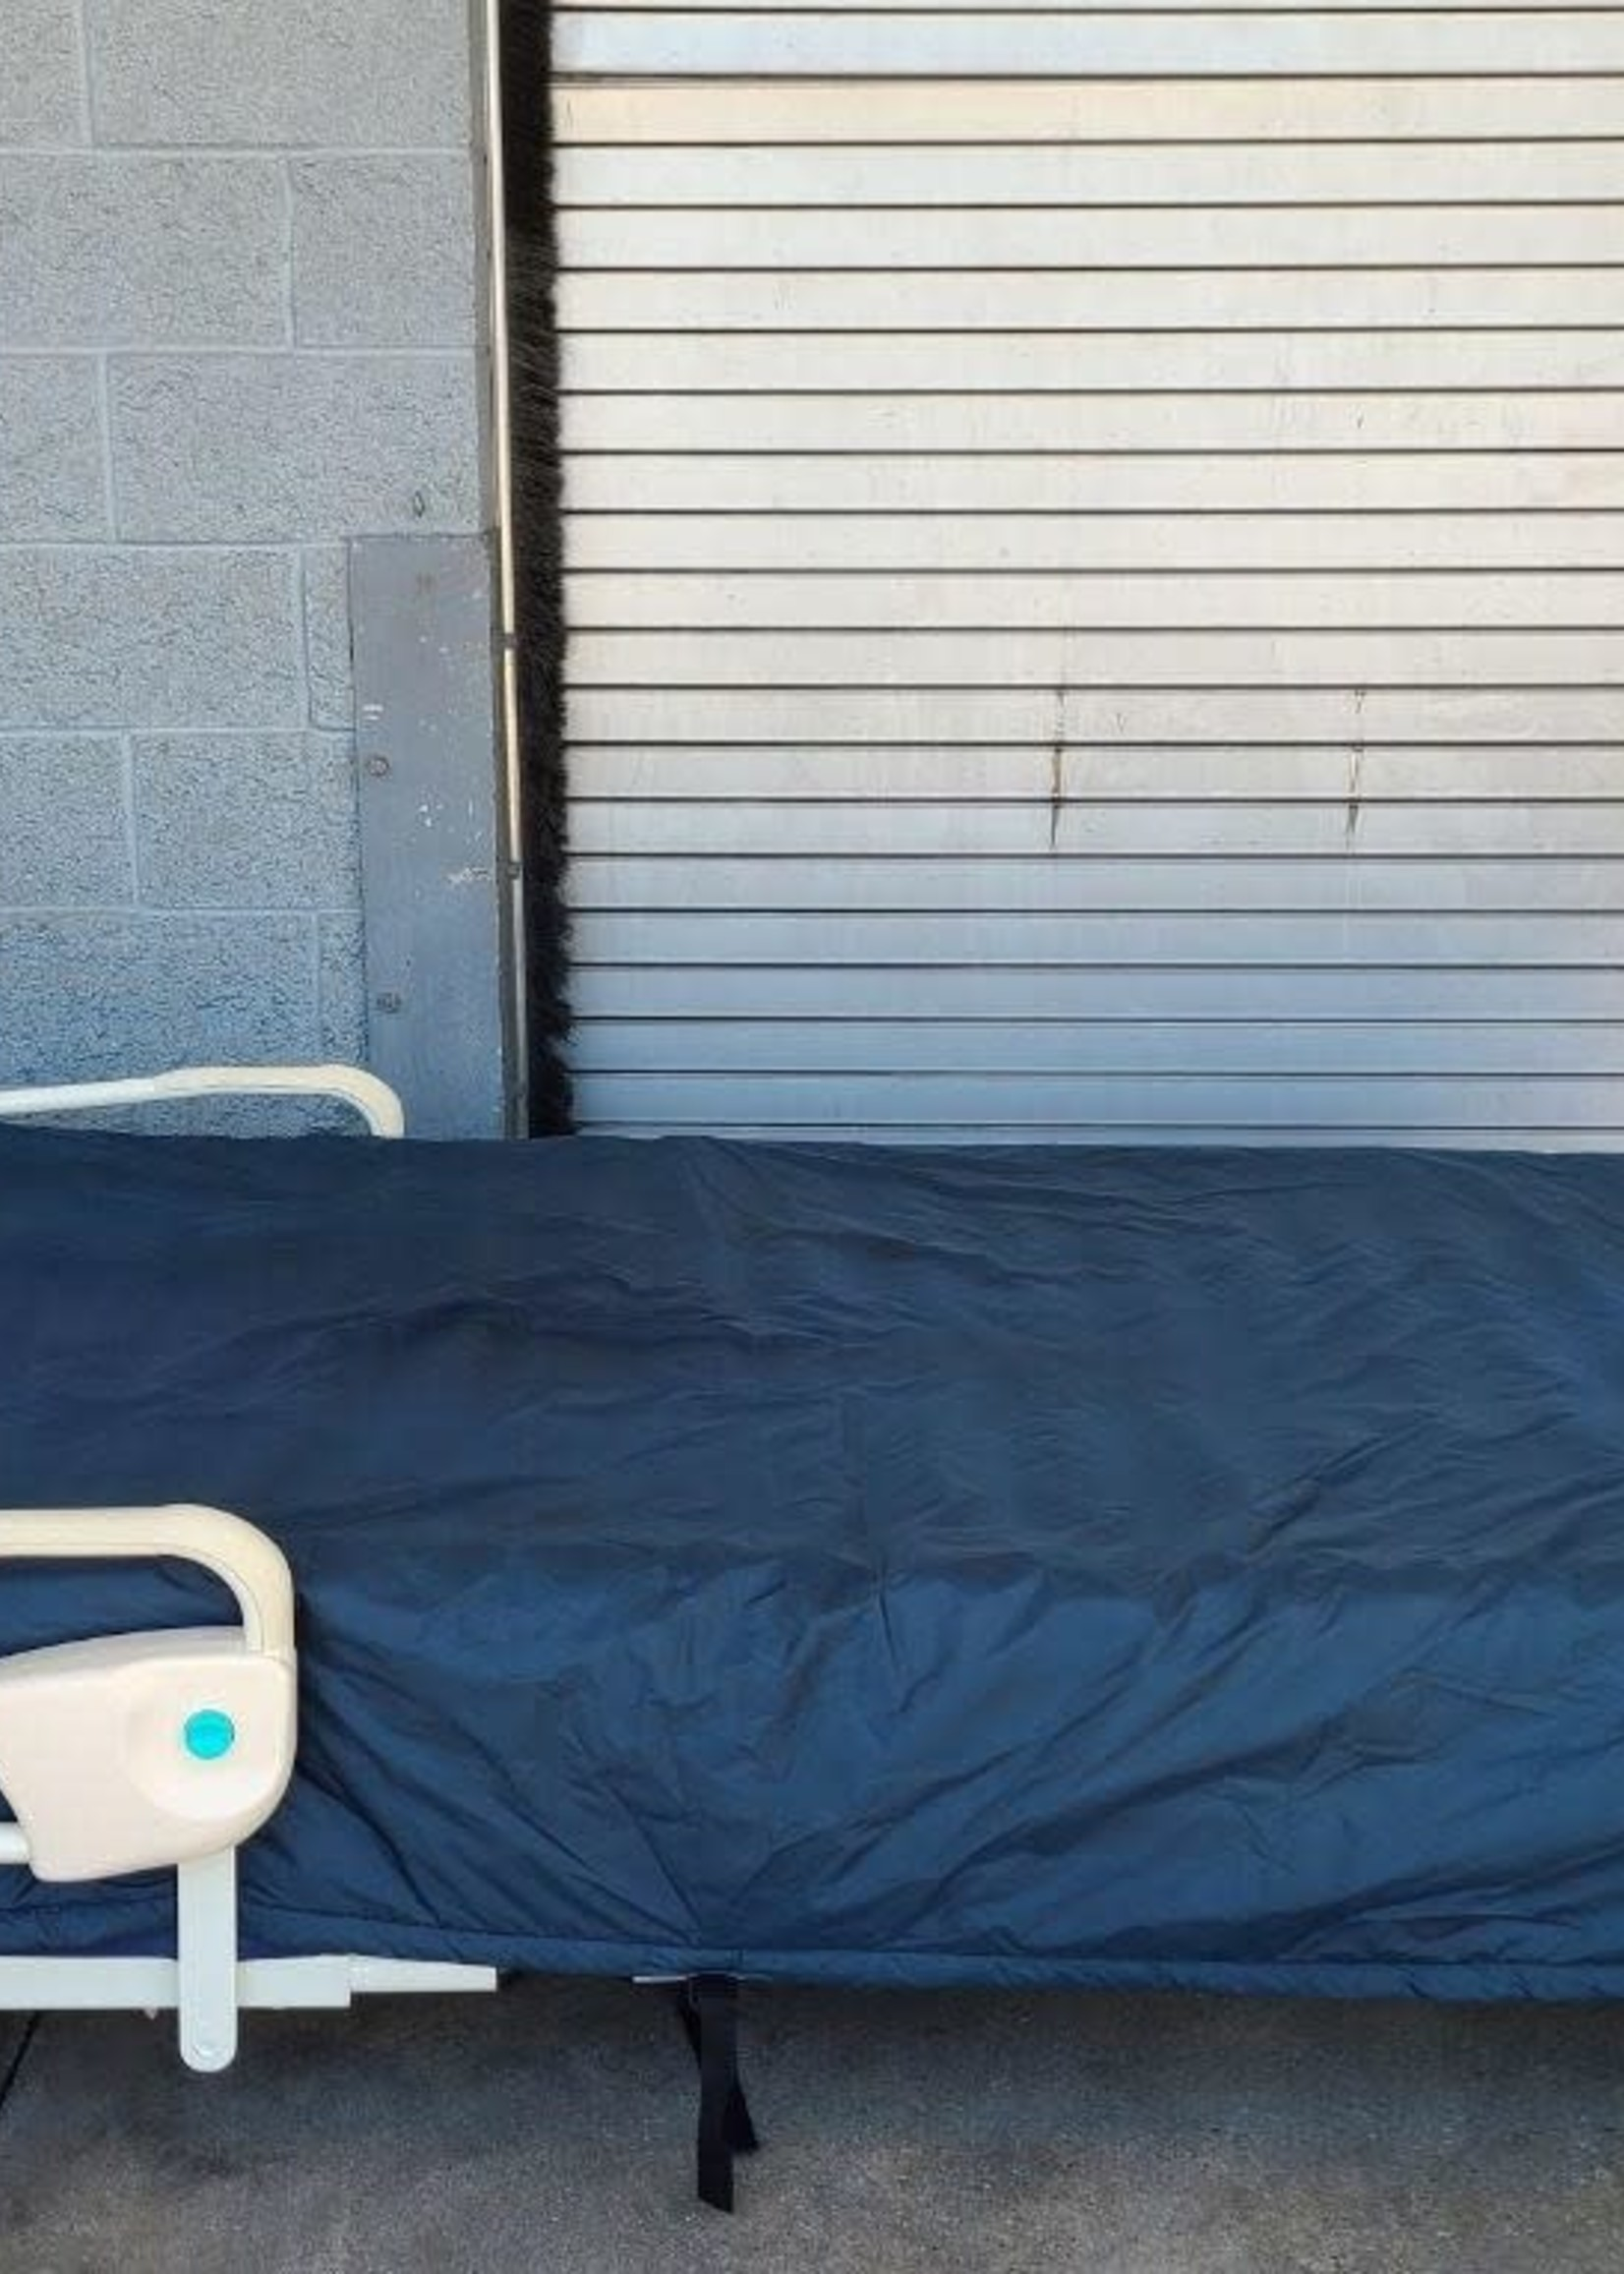 Joerns Joerns Ultra XT Bed and Dolphin Fluid Immersion Simulation Mattress System (Used)